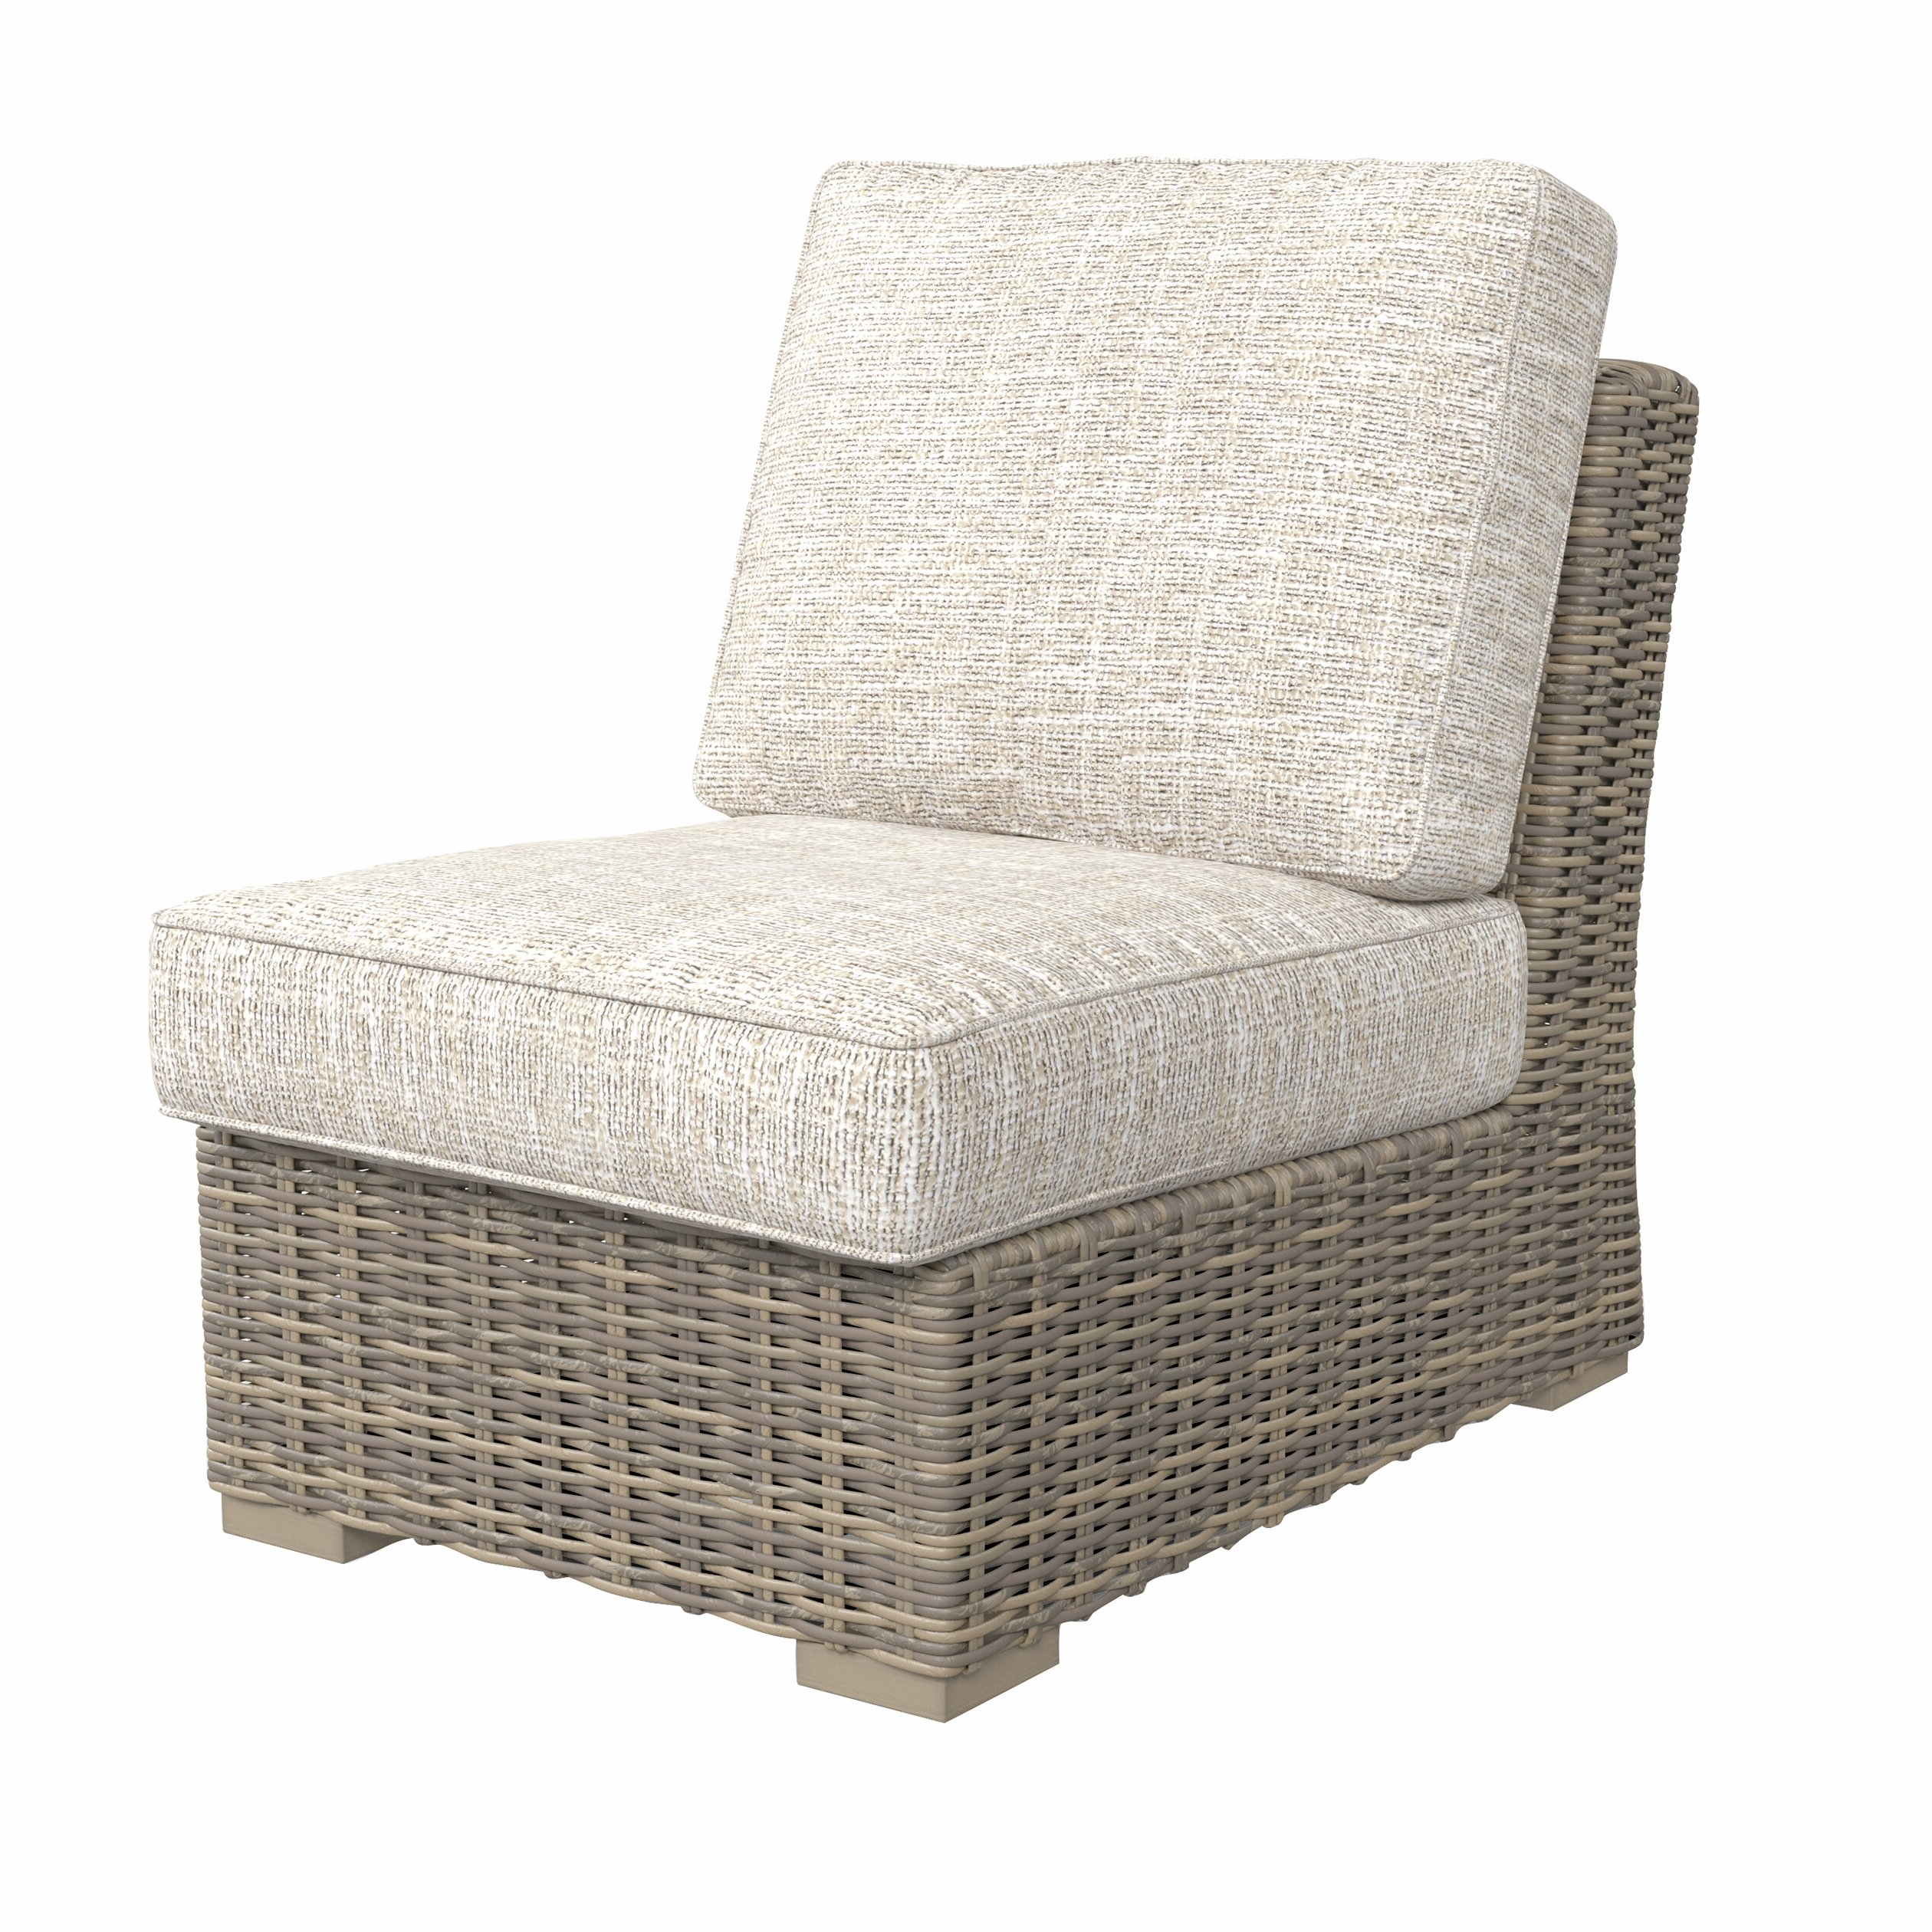 Flippo Patio Chair With Cushions Throughout Newest Astrid Wicker Patio Sofas With Cushions (View 12 of 25)